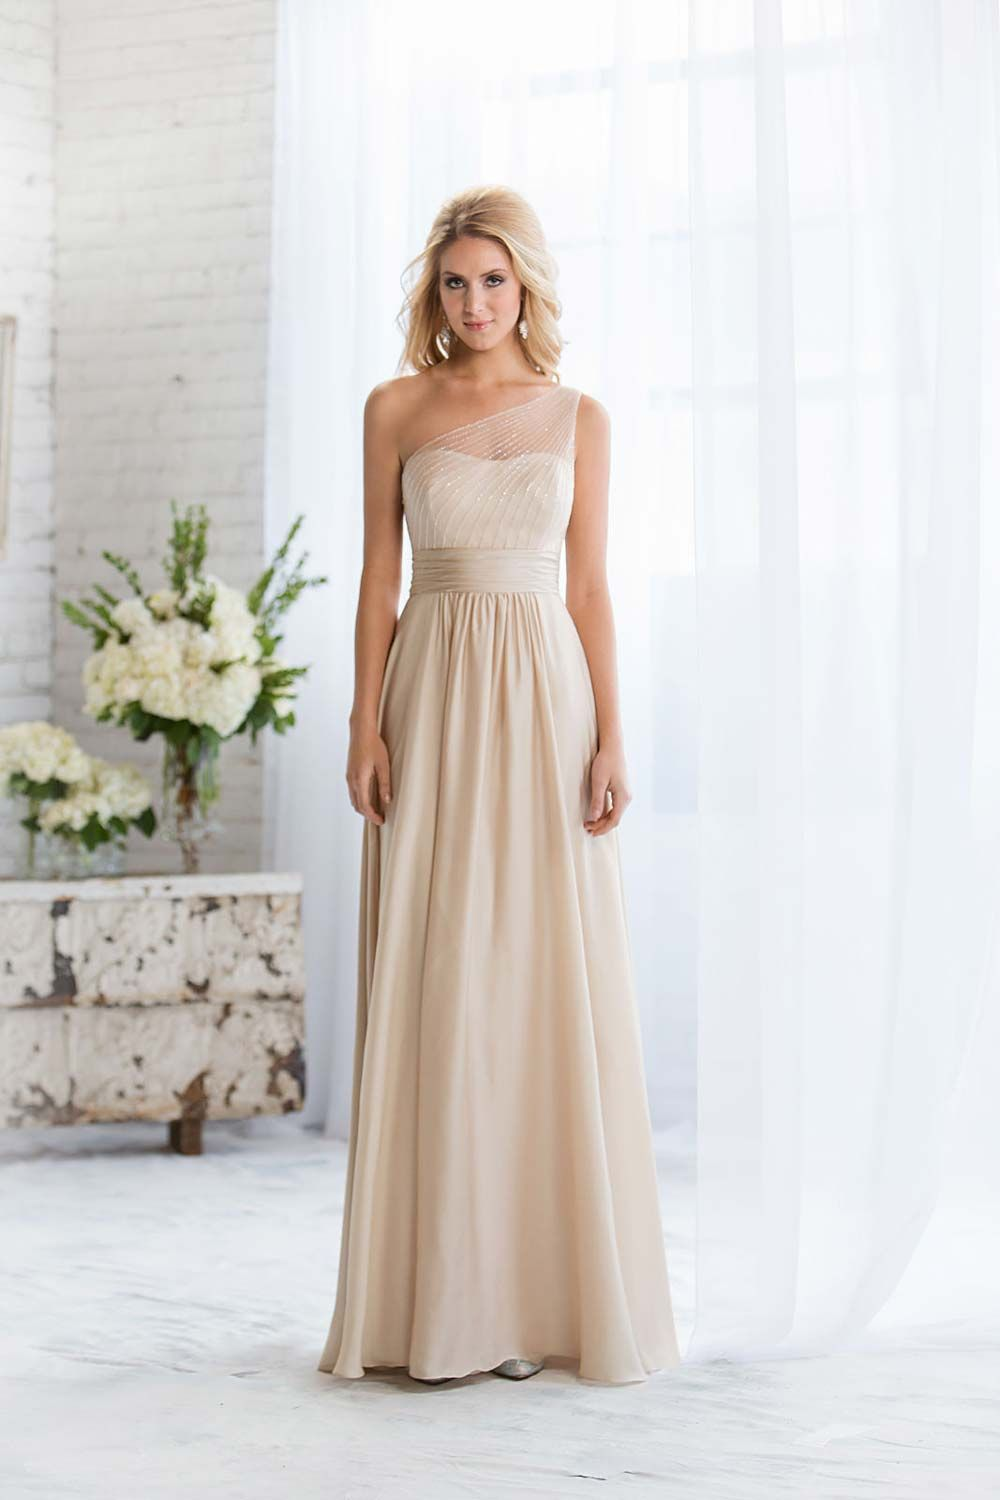 15 Champagne Bridesmaid Dresses That